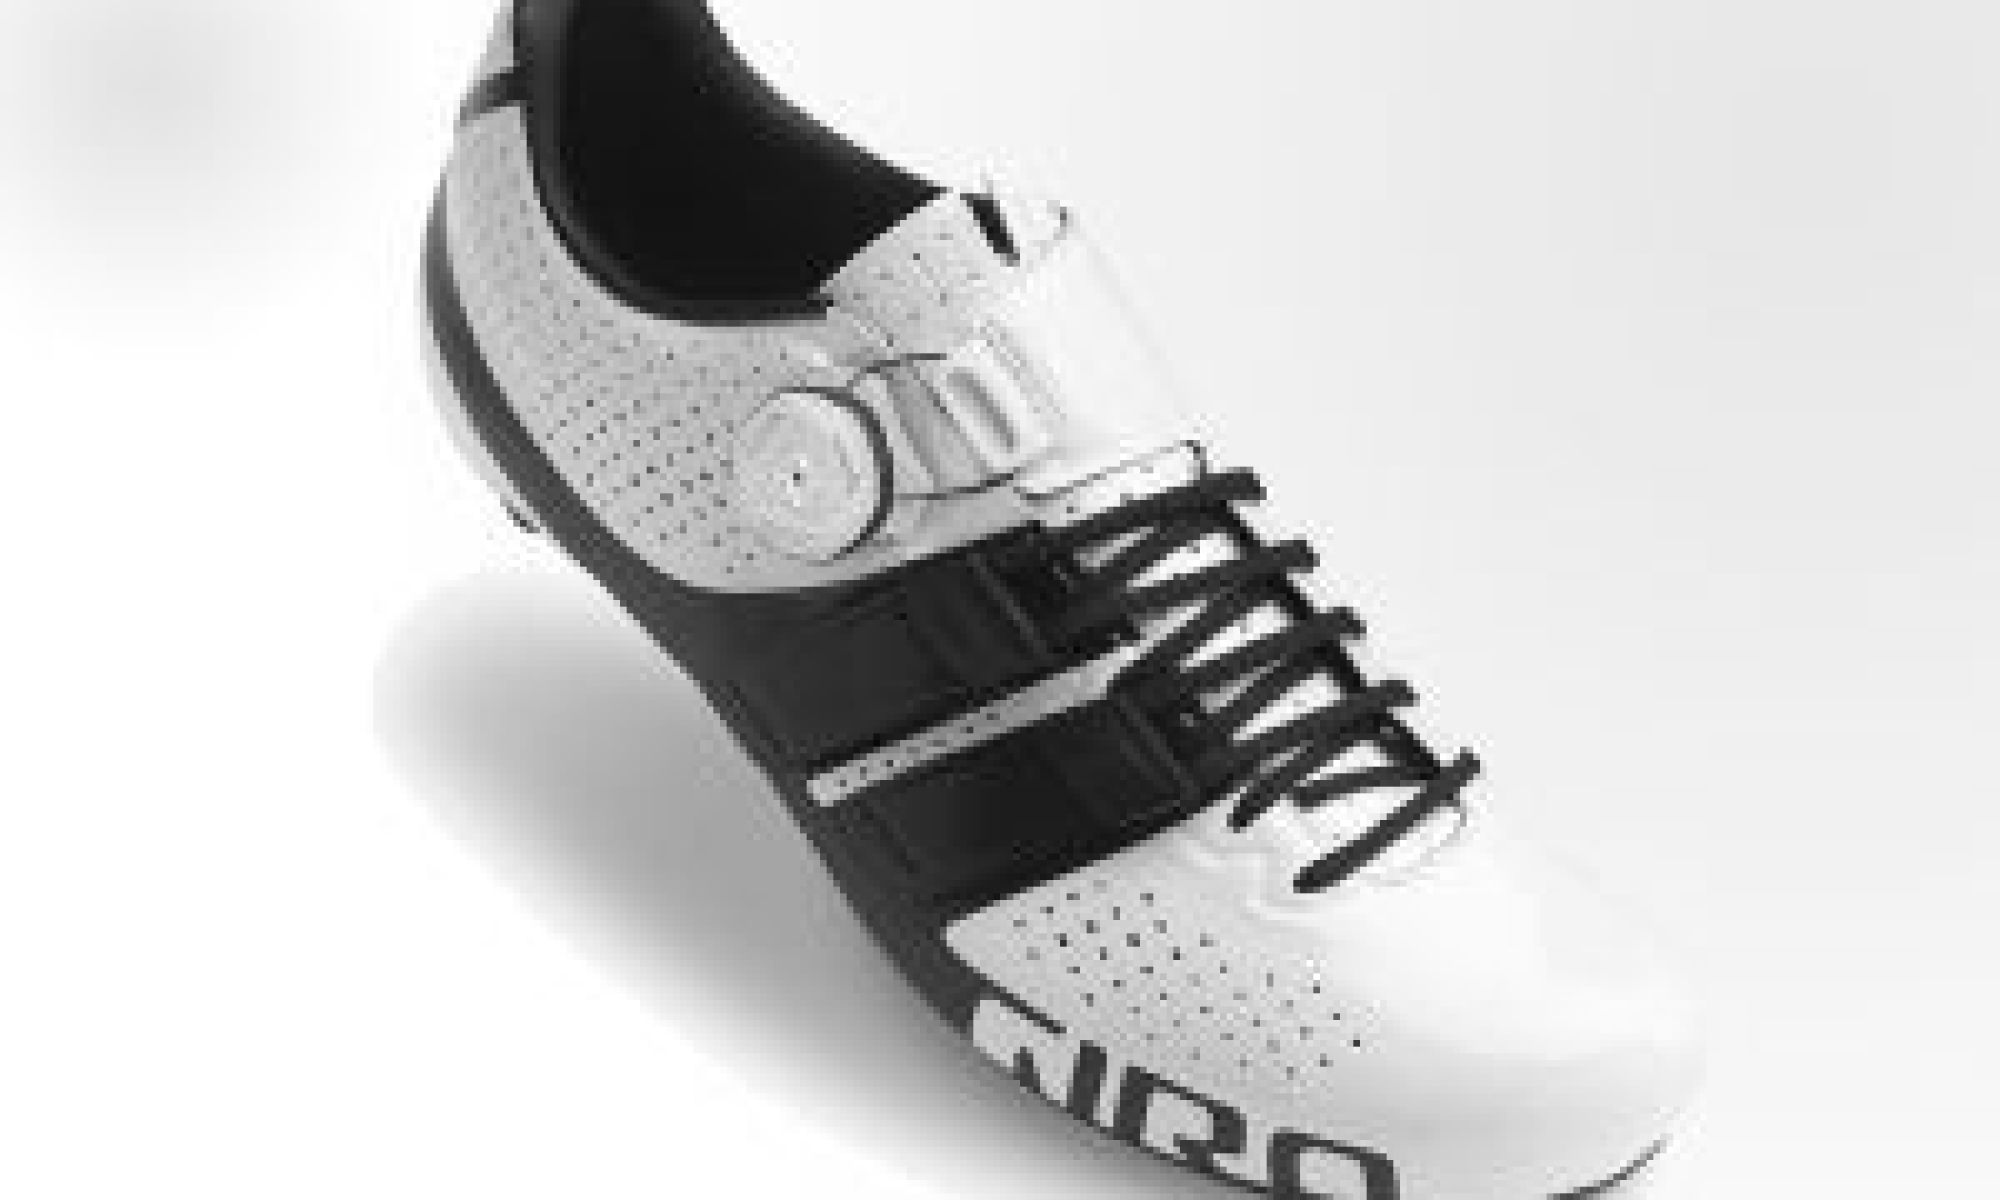 Cycling shoe deals: Big discounts on premium Giro and Specialized shoes